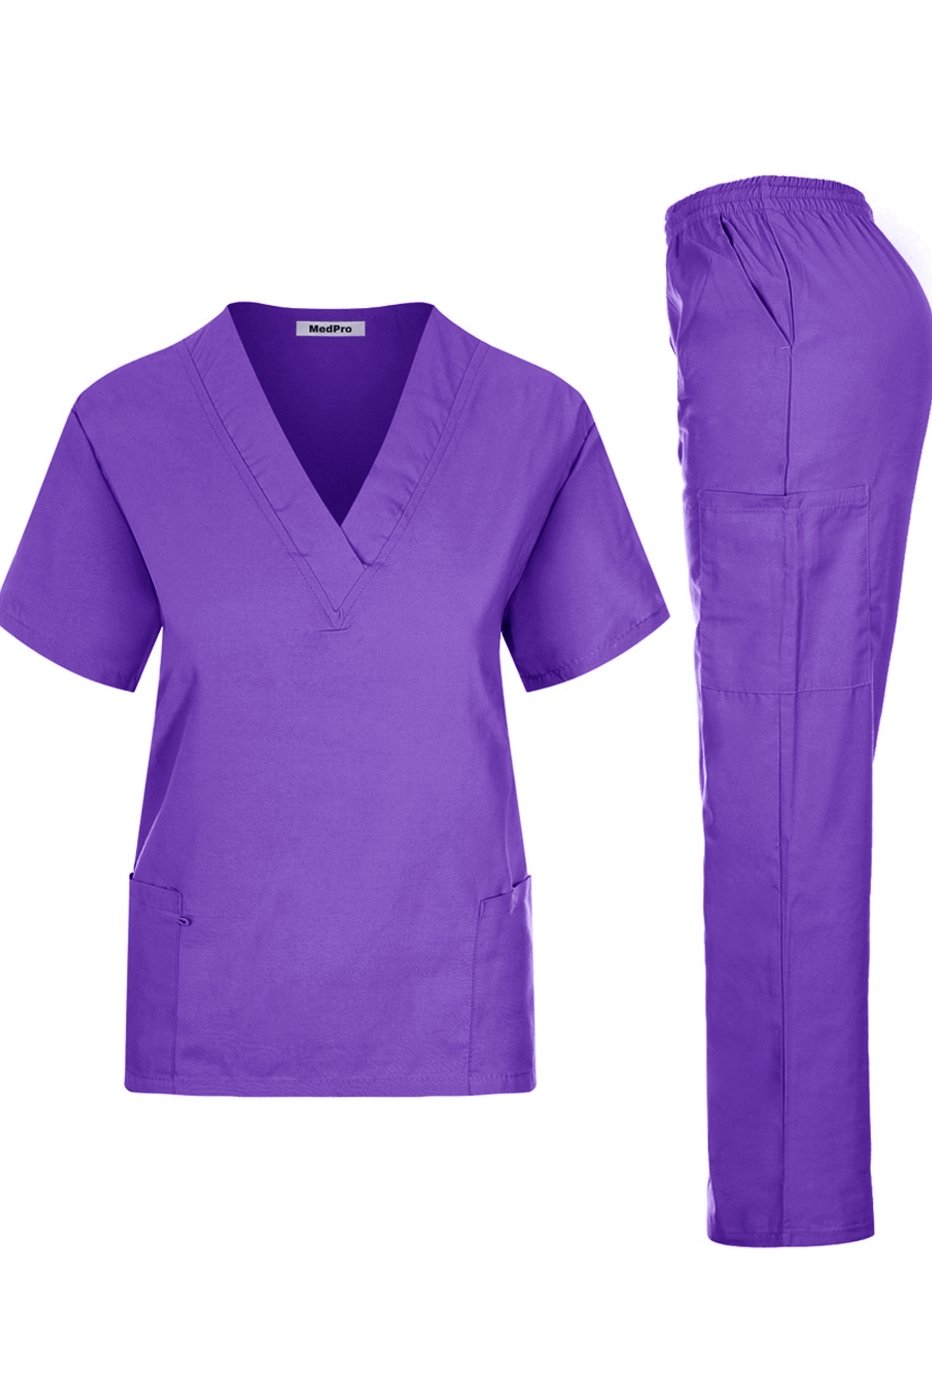 MedPro Women's Solid Medical Scrub V-Neck Top and Cargo Pants Iris L